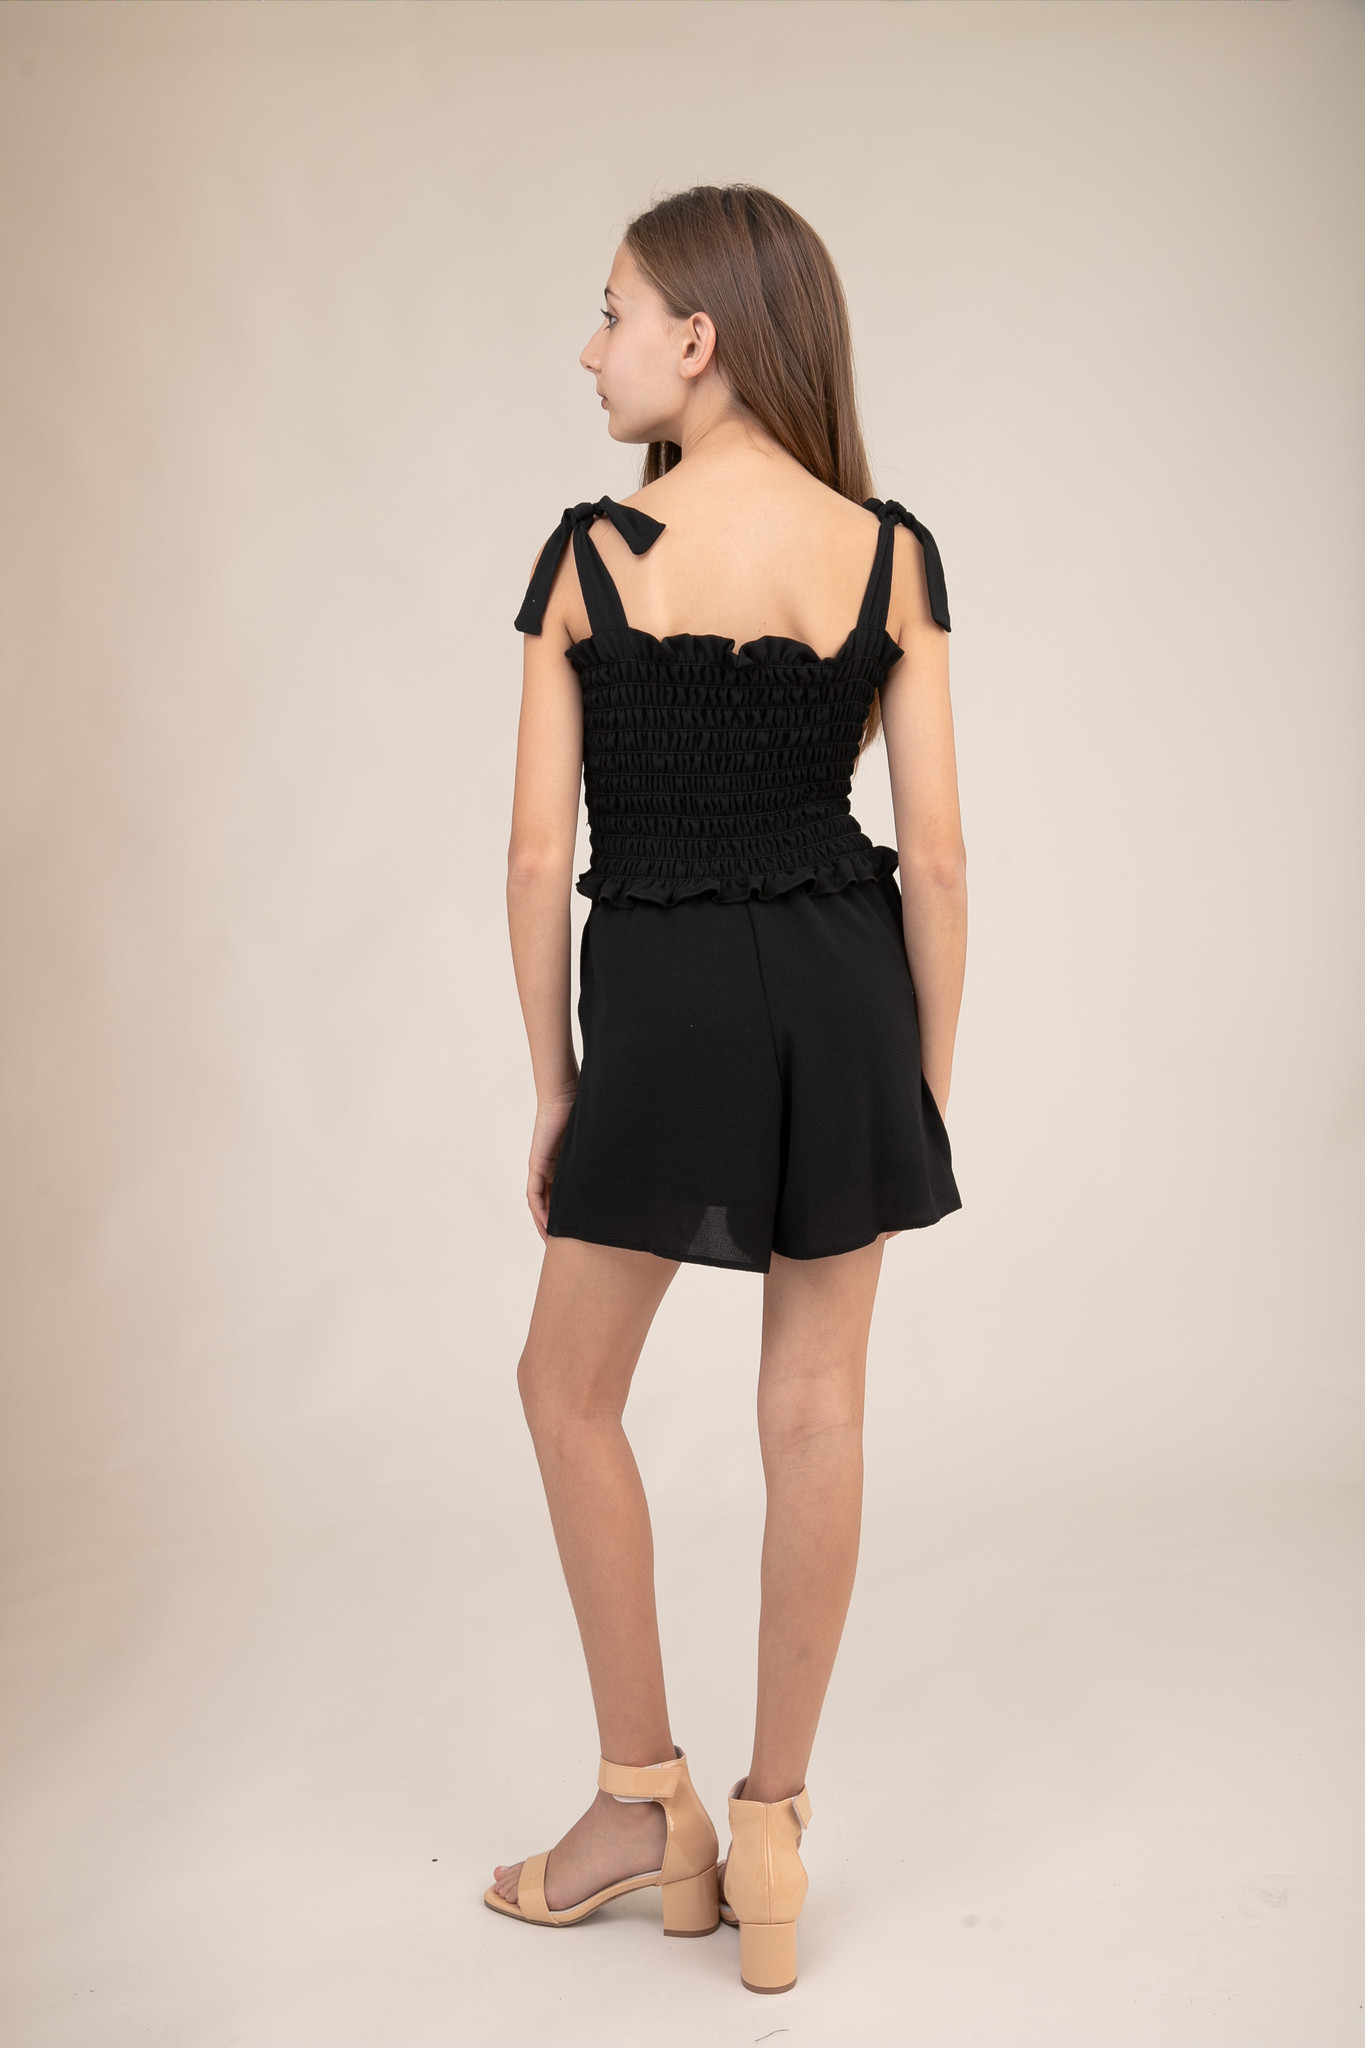 Black Smocked Romper with Knotted Straps back.